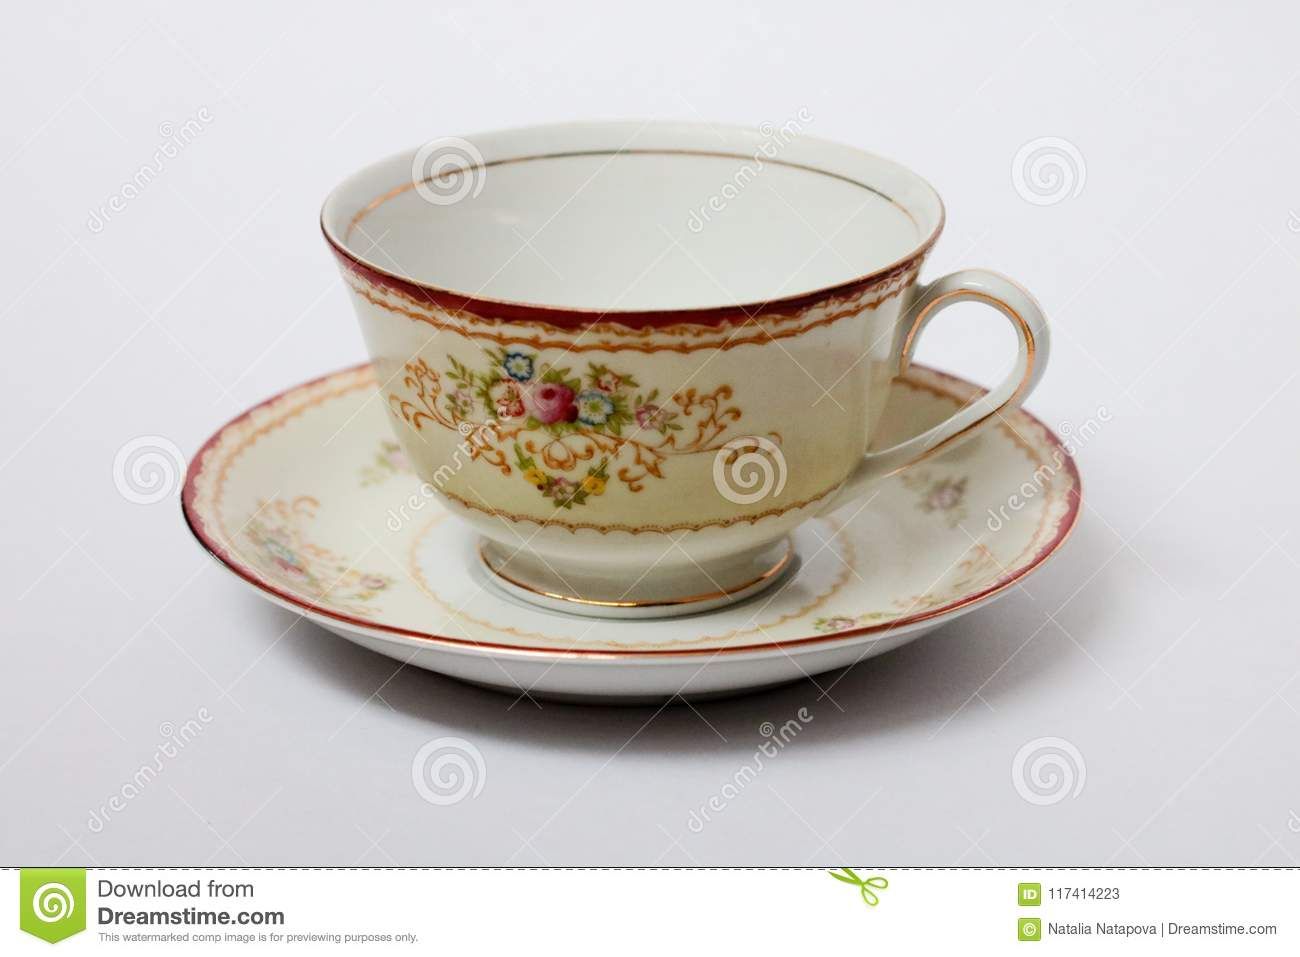 A Porcelain Cup In A Saucer Stock Image - Image of china, floral